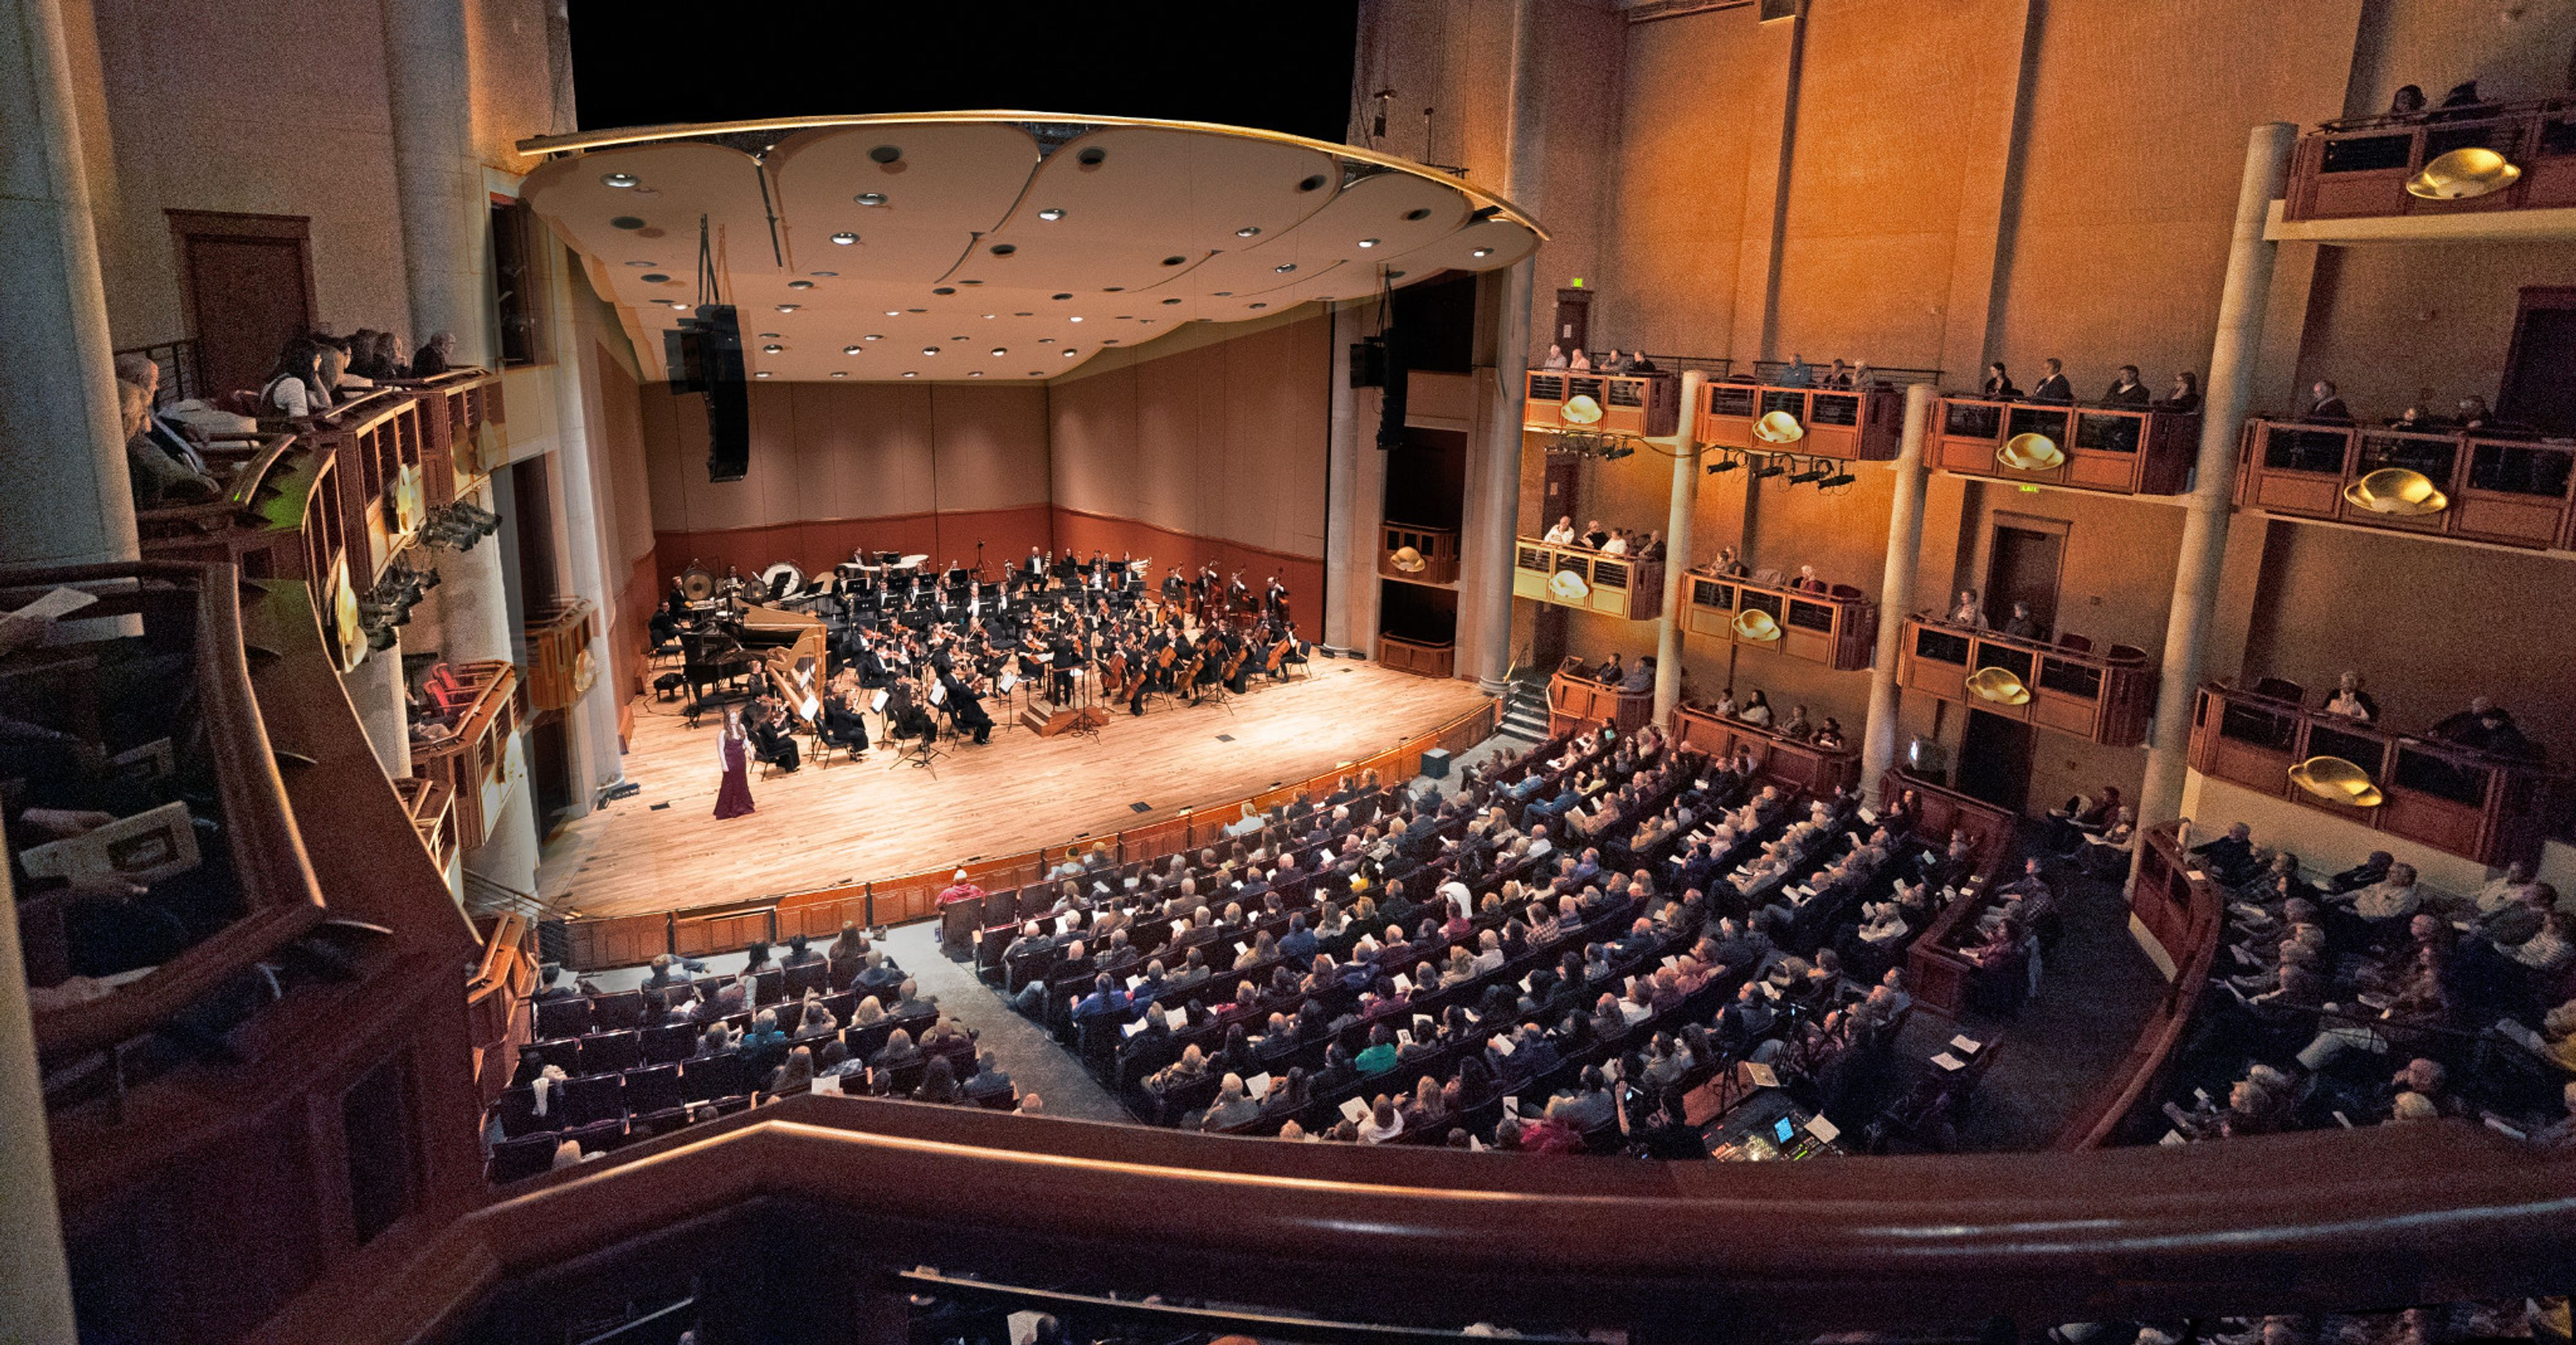 Lamont symphony orchestra performs at the Gates Concert Hall.